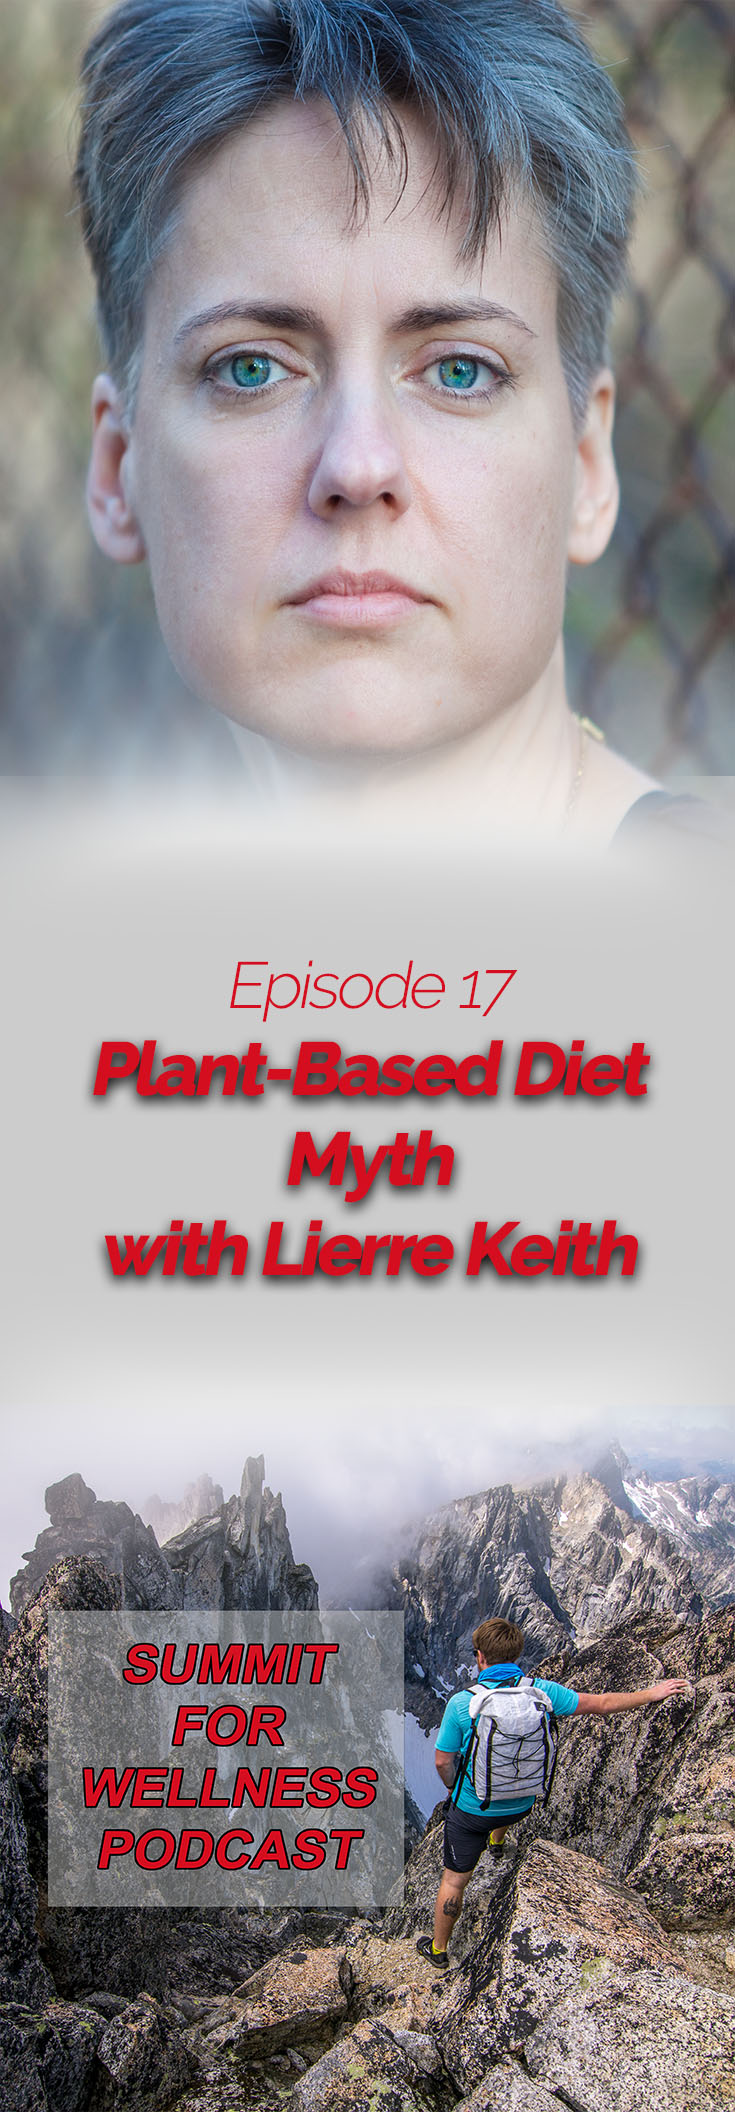 Lierre Keith talks about her 20 year stint as a vegan and how it destroyed her health.